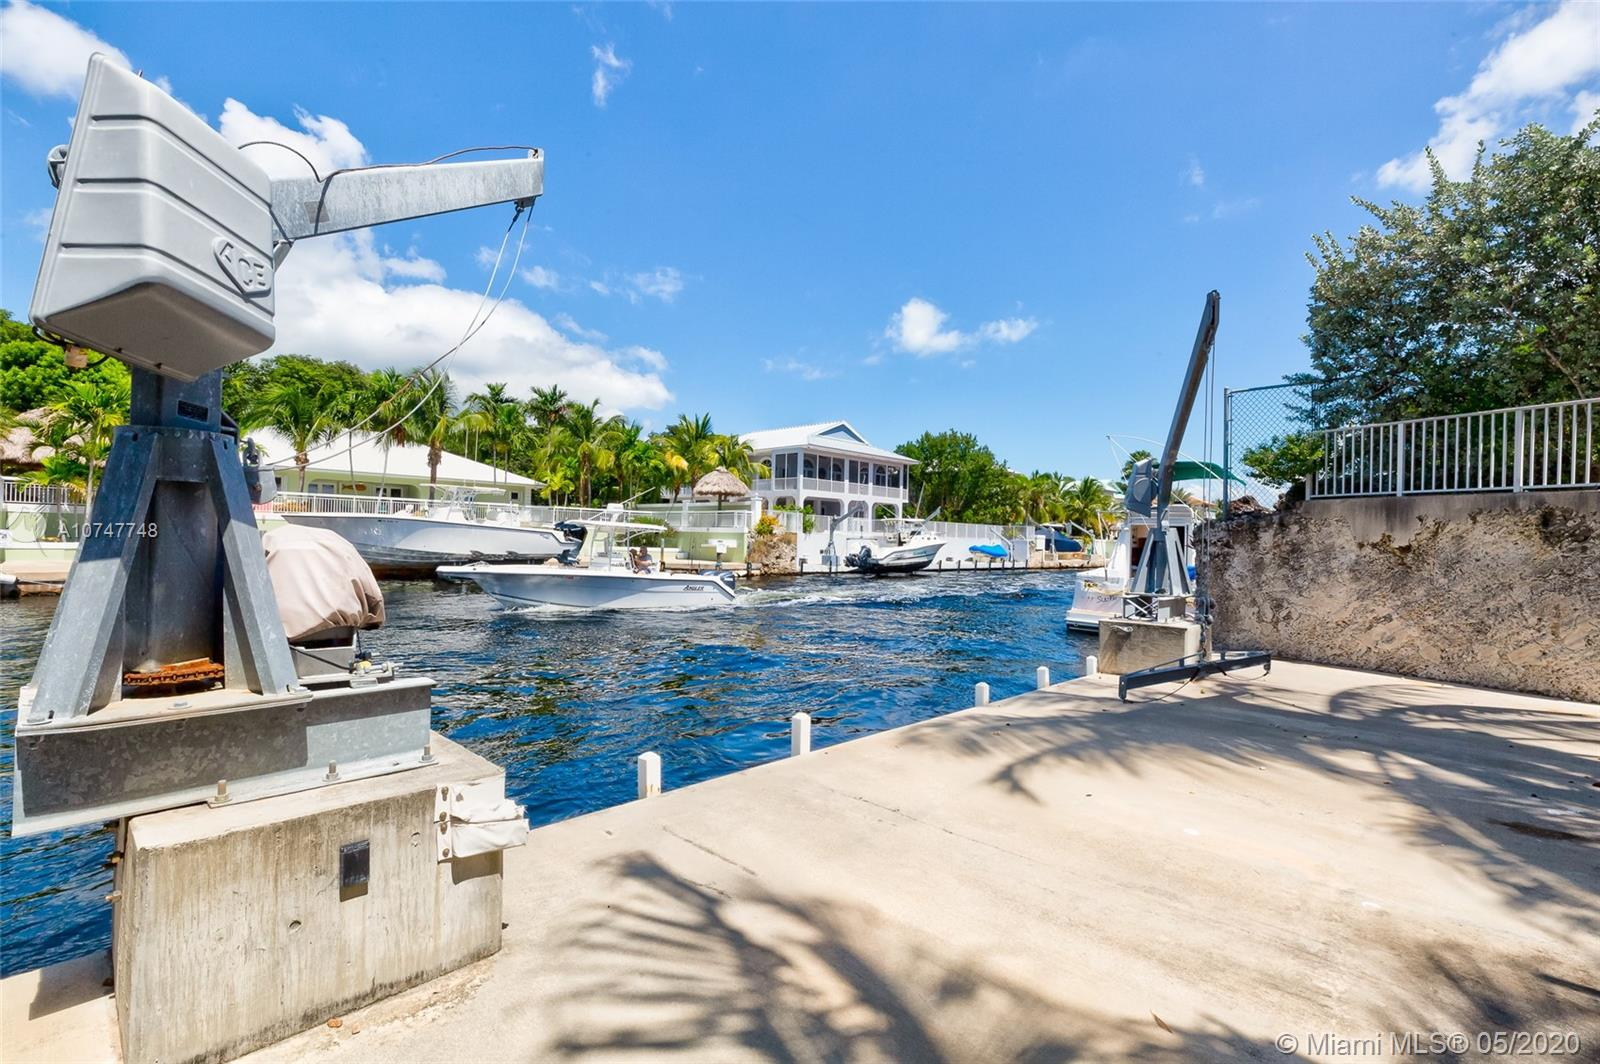 22 Bass Ave, Key Largo, FL 33037 - Key Largo, FL real estate listing